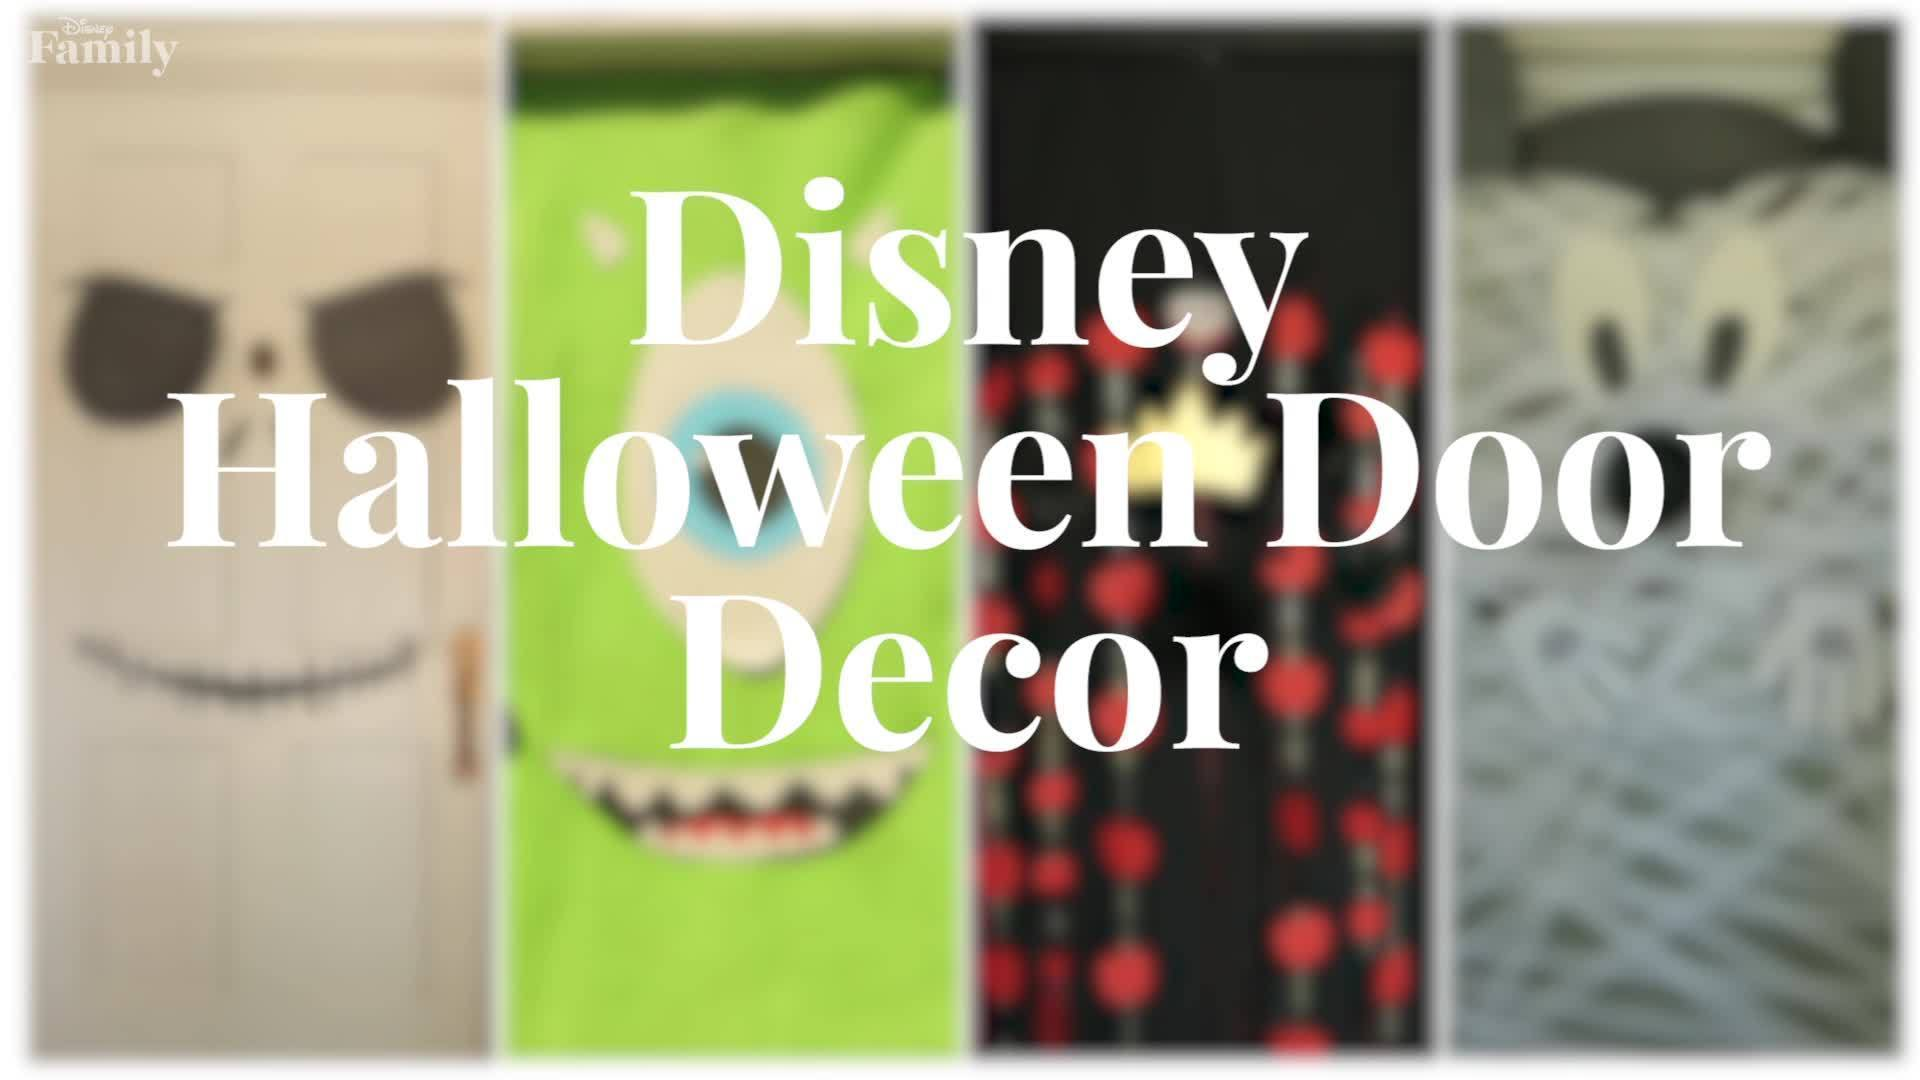 Disney Halloween Door Decor Four Ways | Disney Family